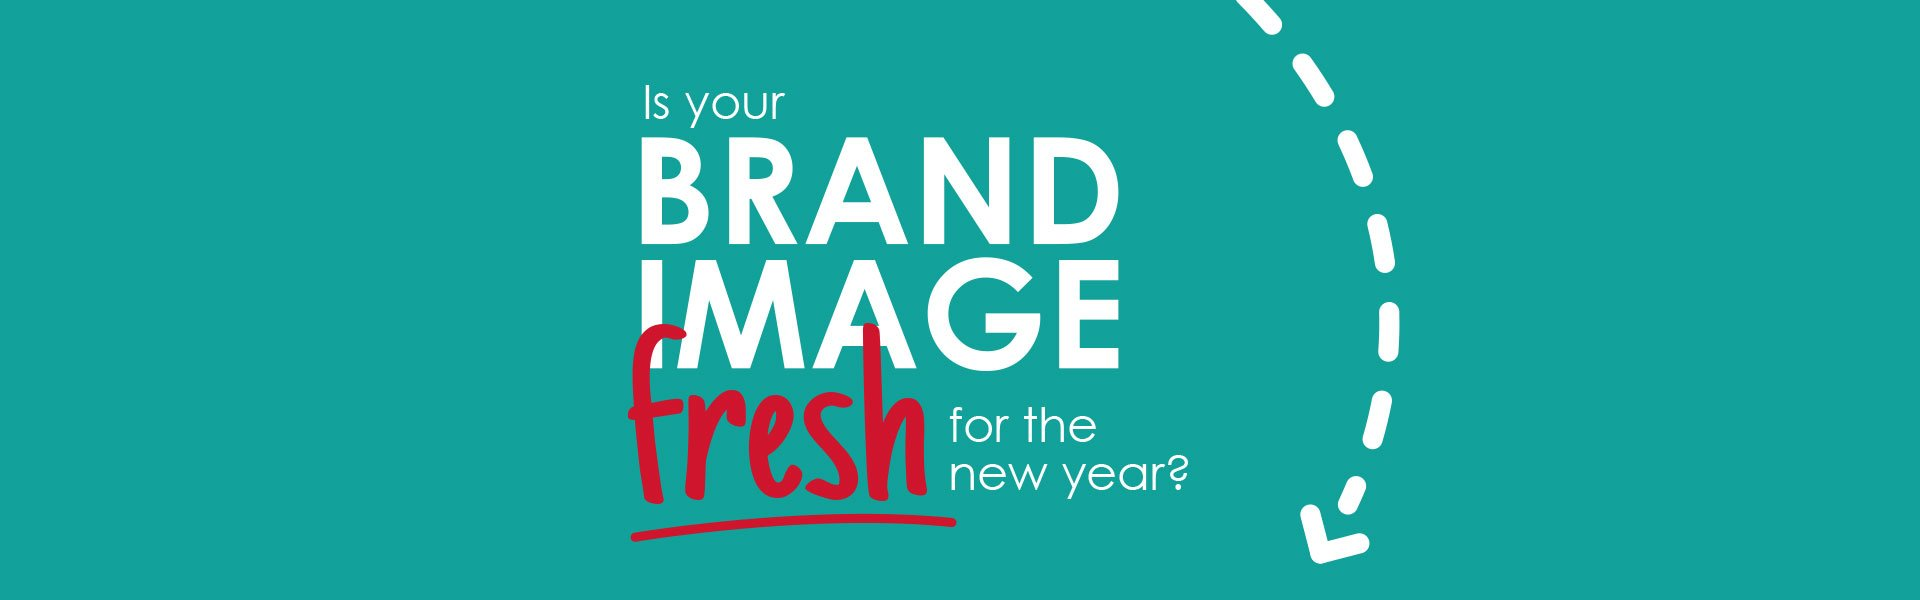 Is your brand image fresh for the new year